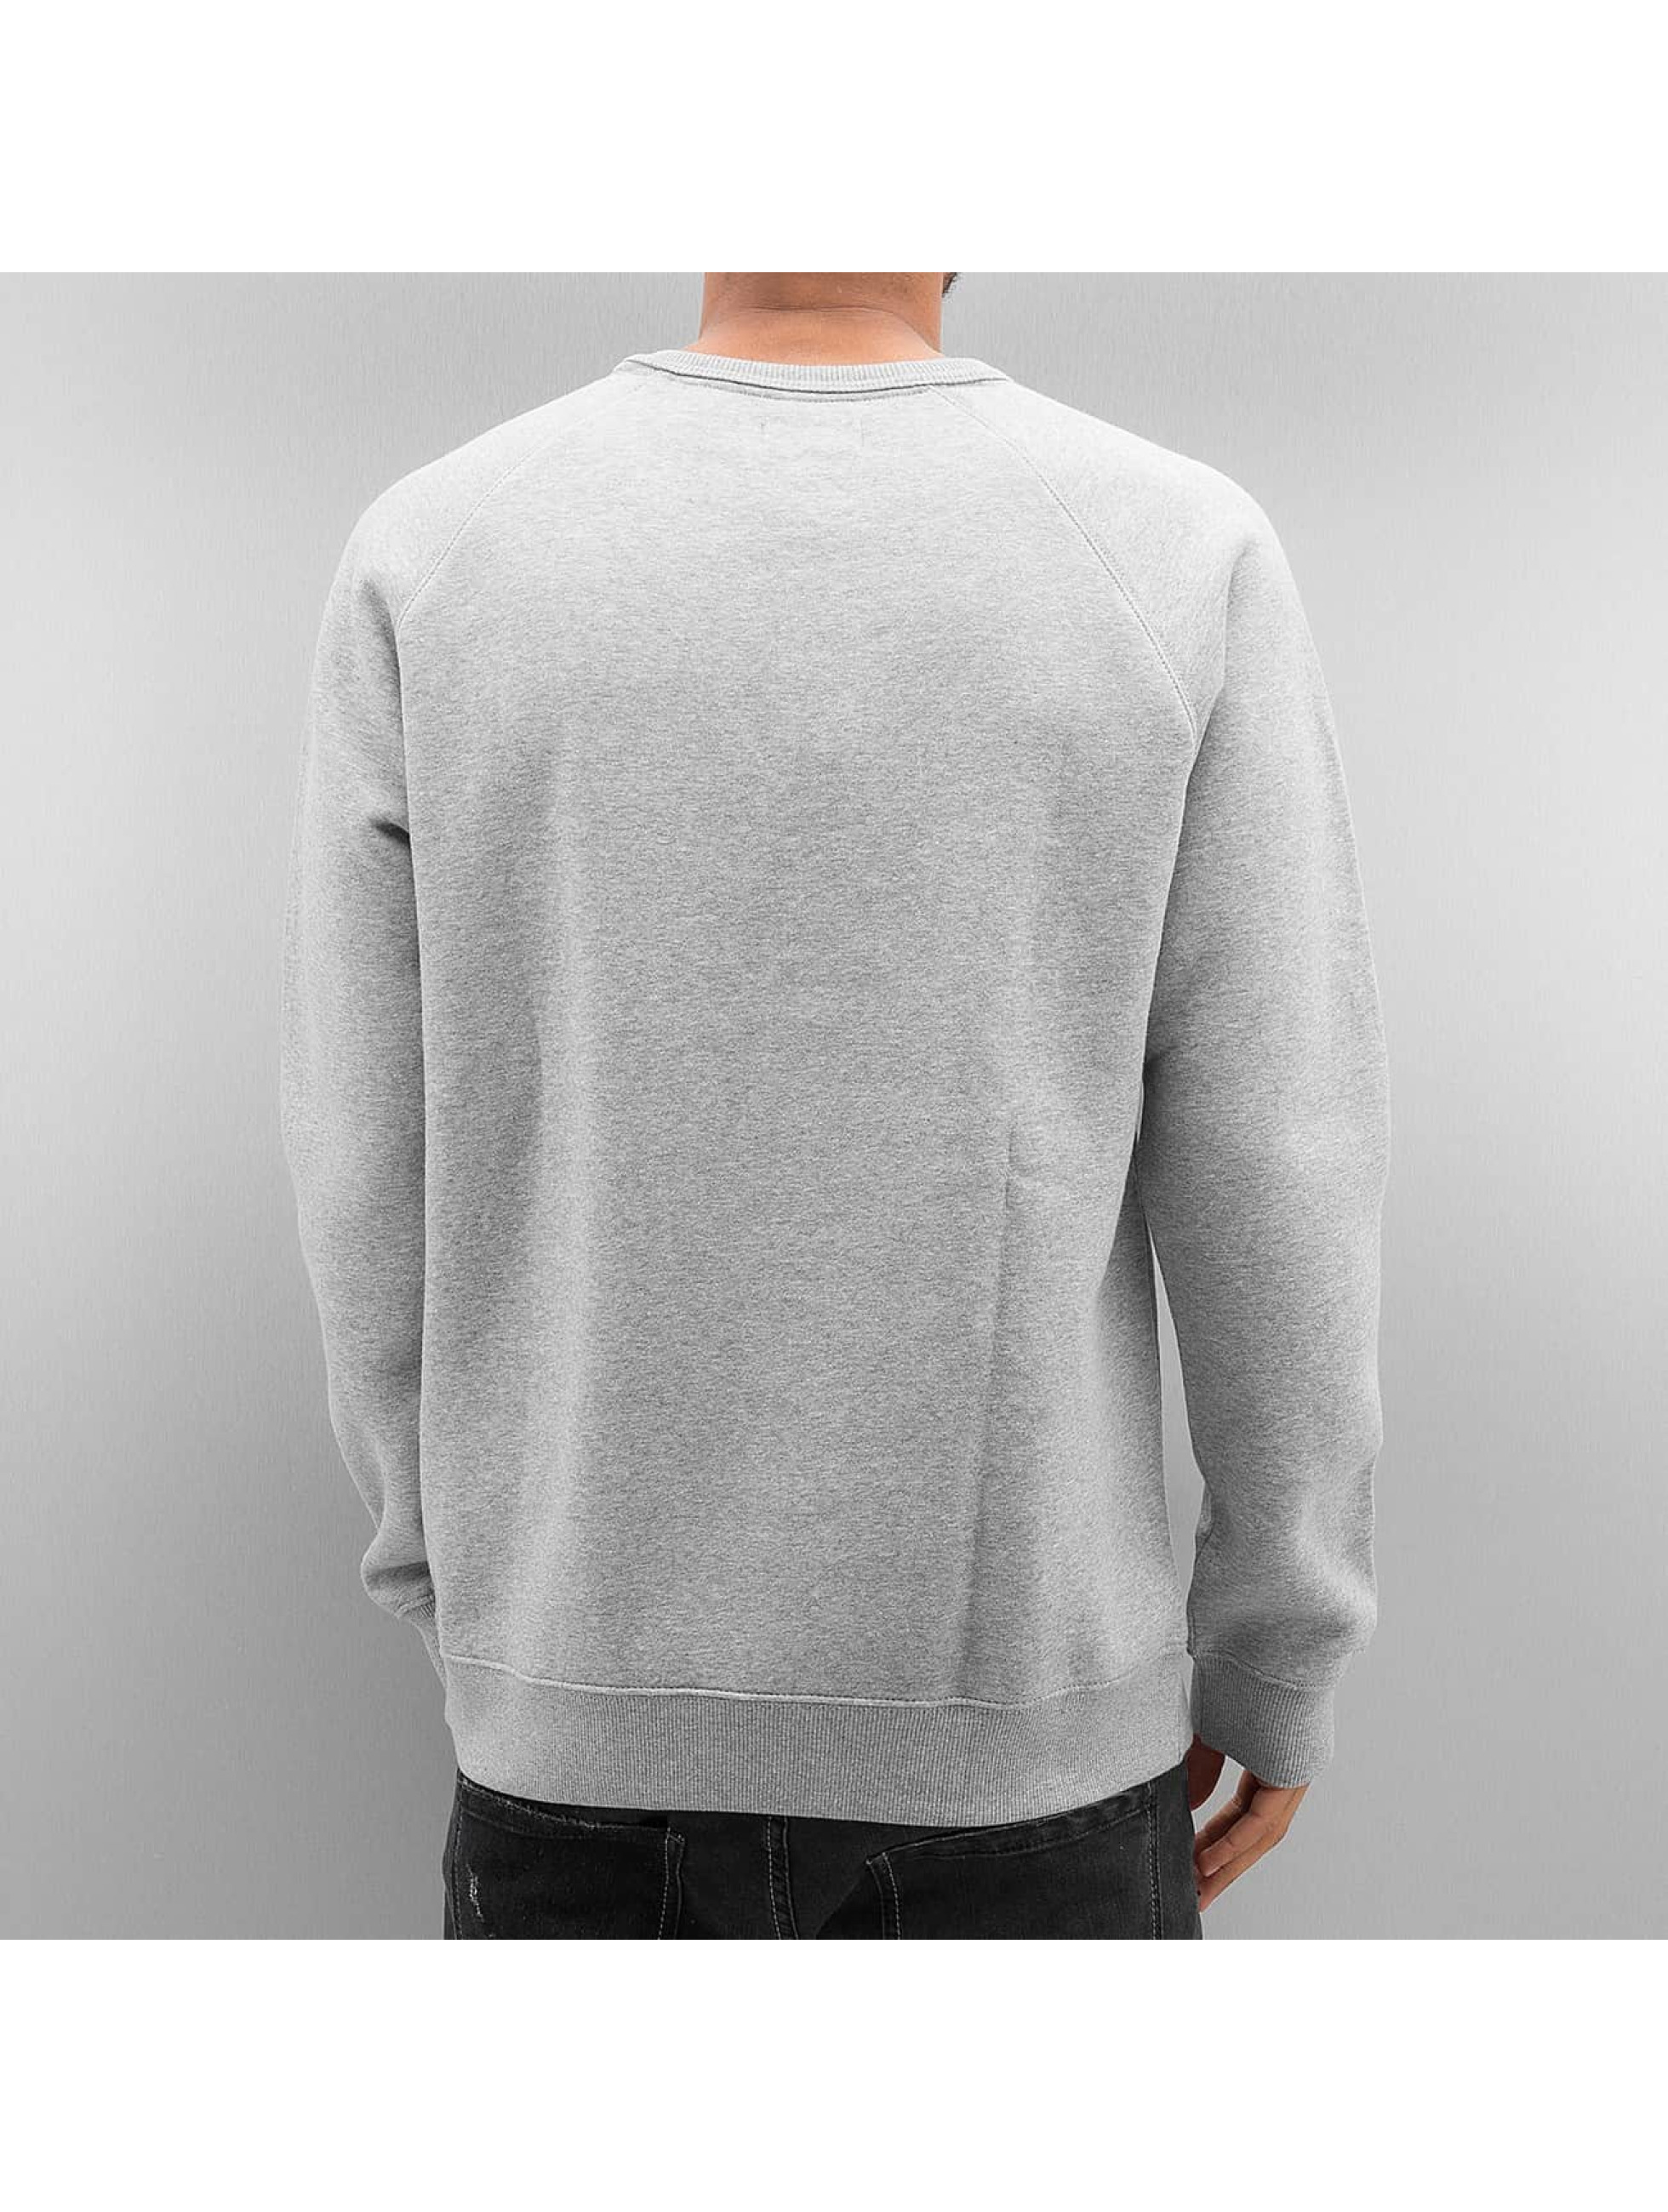 adidas originals Jumper Trefoil Fleece grey